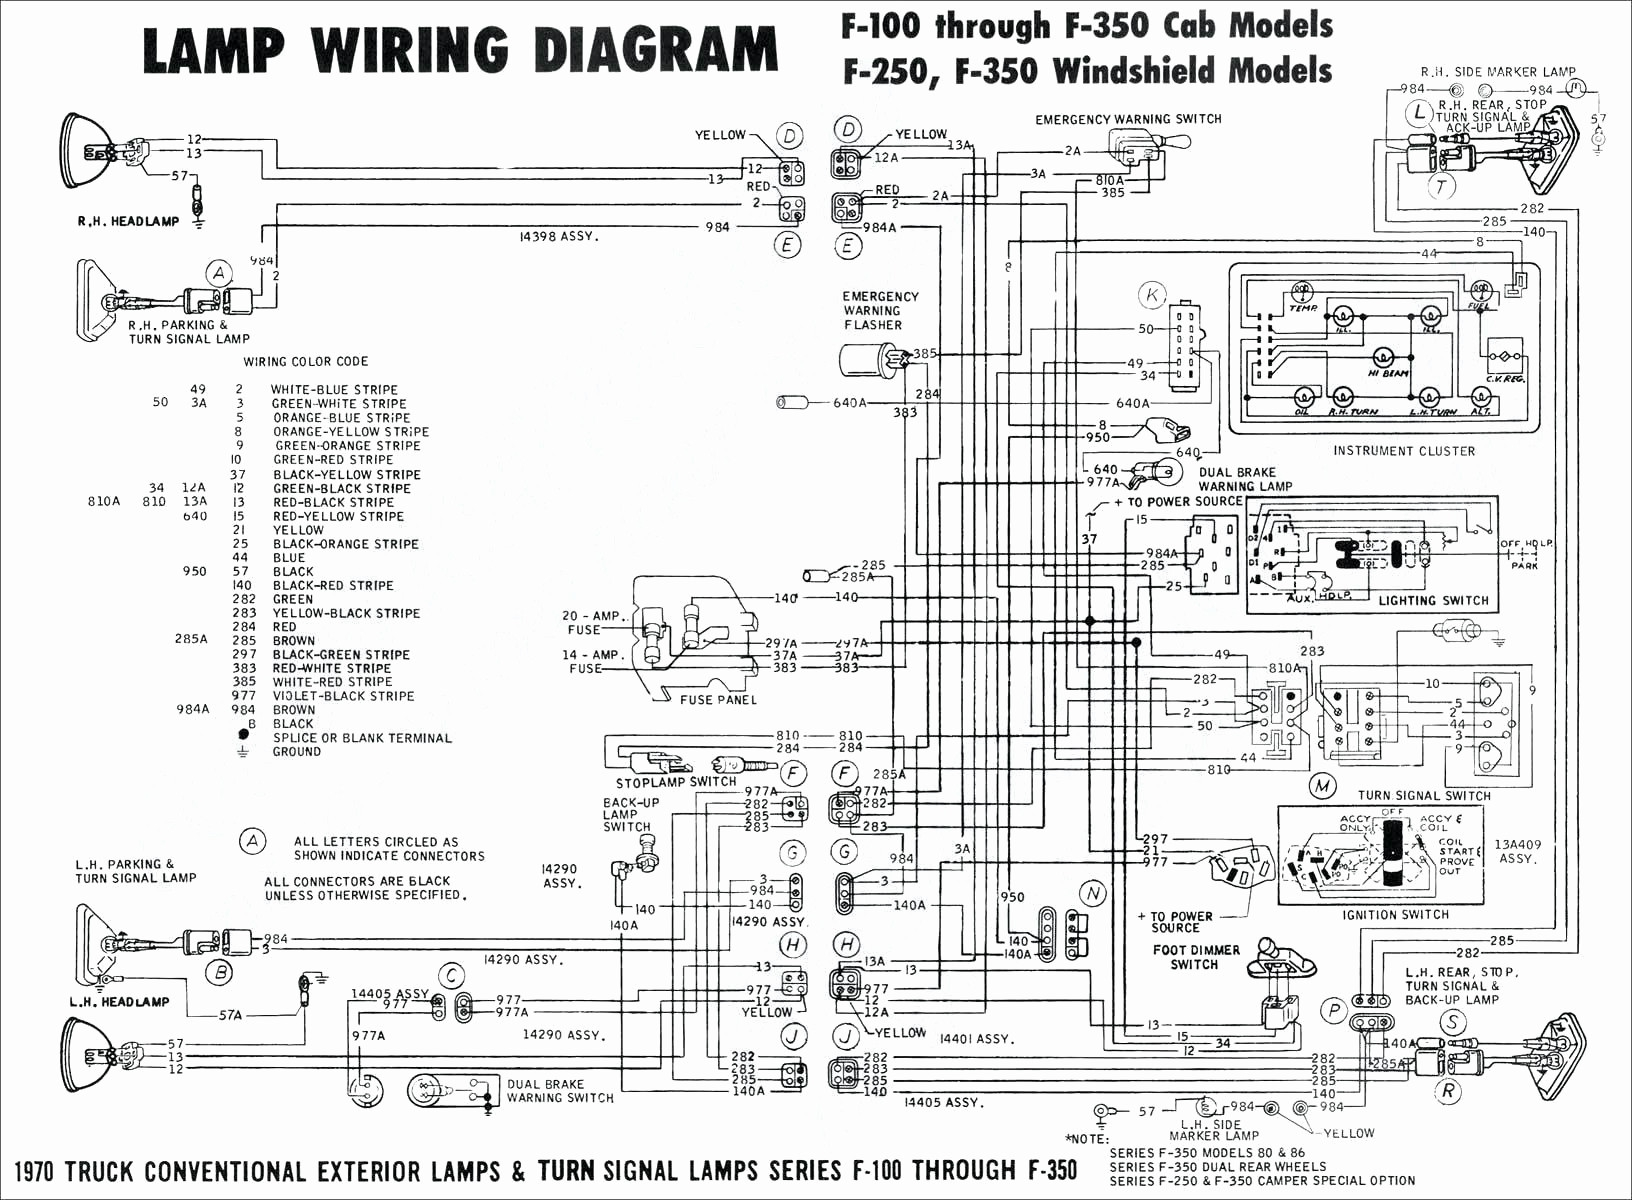 2004 silverado wiring diagram pdf Download-Tail Light Wiring Diagram 1995 Chevy Truck Fresh 1984 Ford Diagrams Manual 7-n